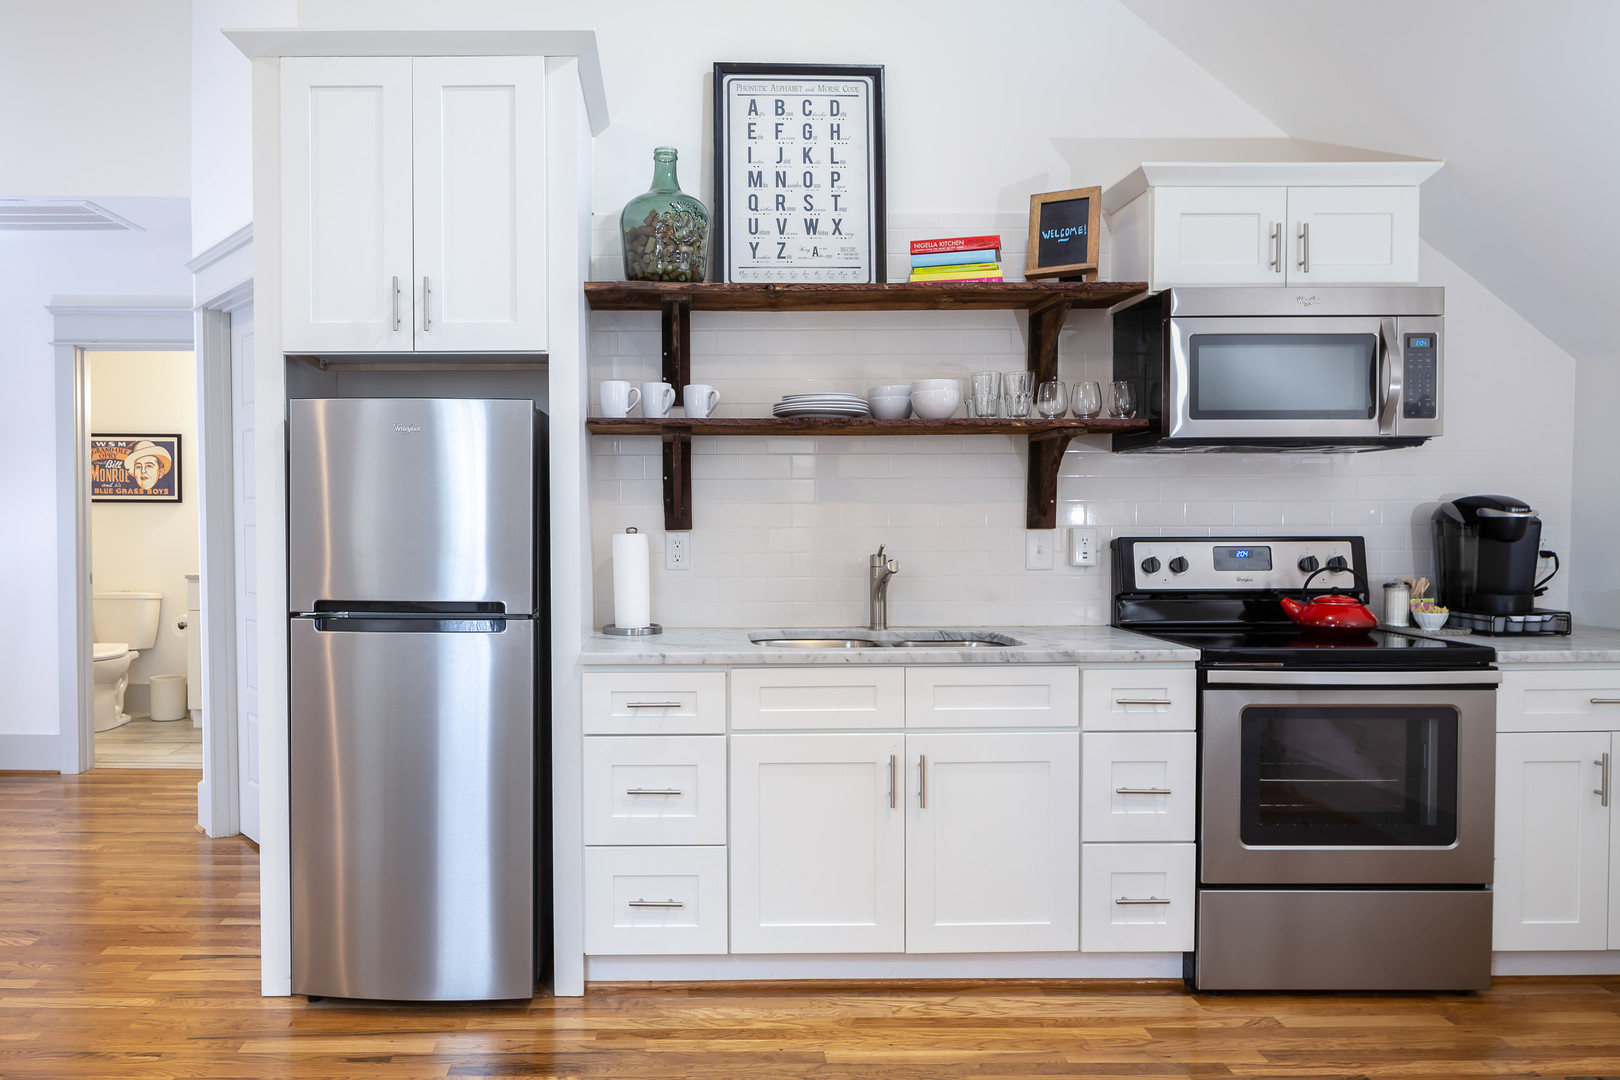 Real Estate Photo of effecient kitchen in New York City.